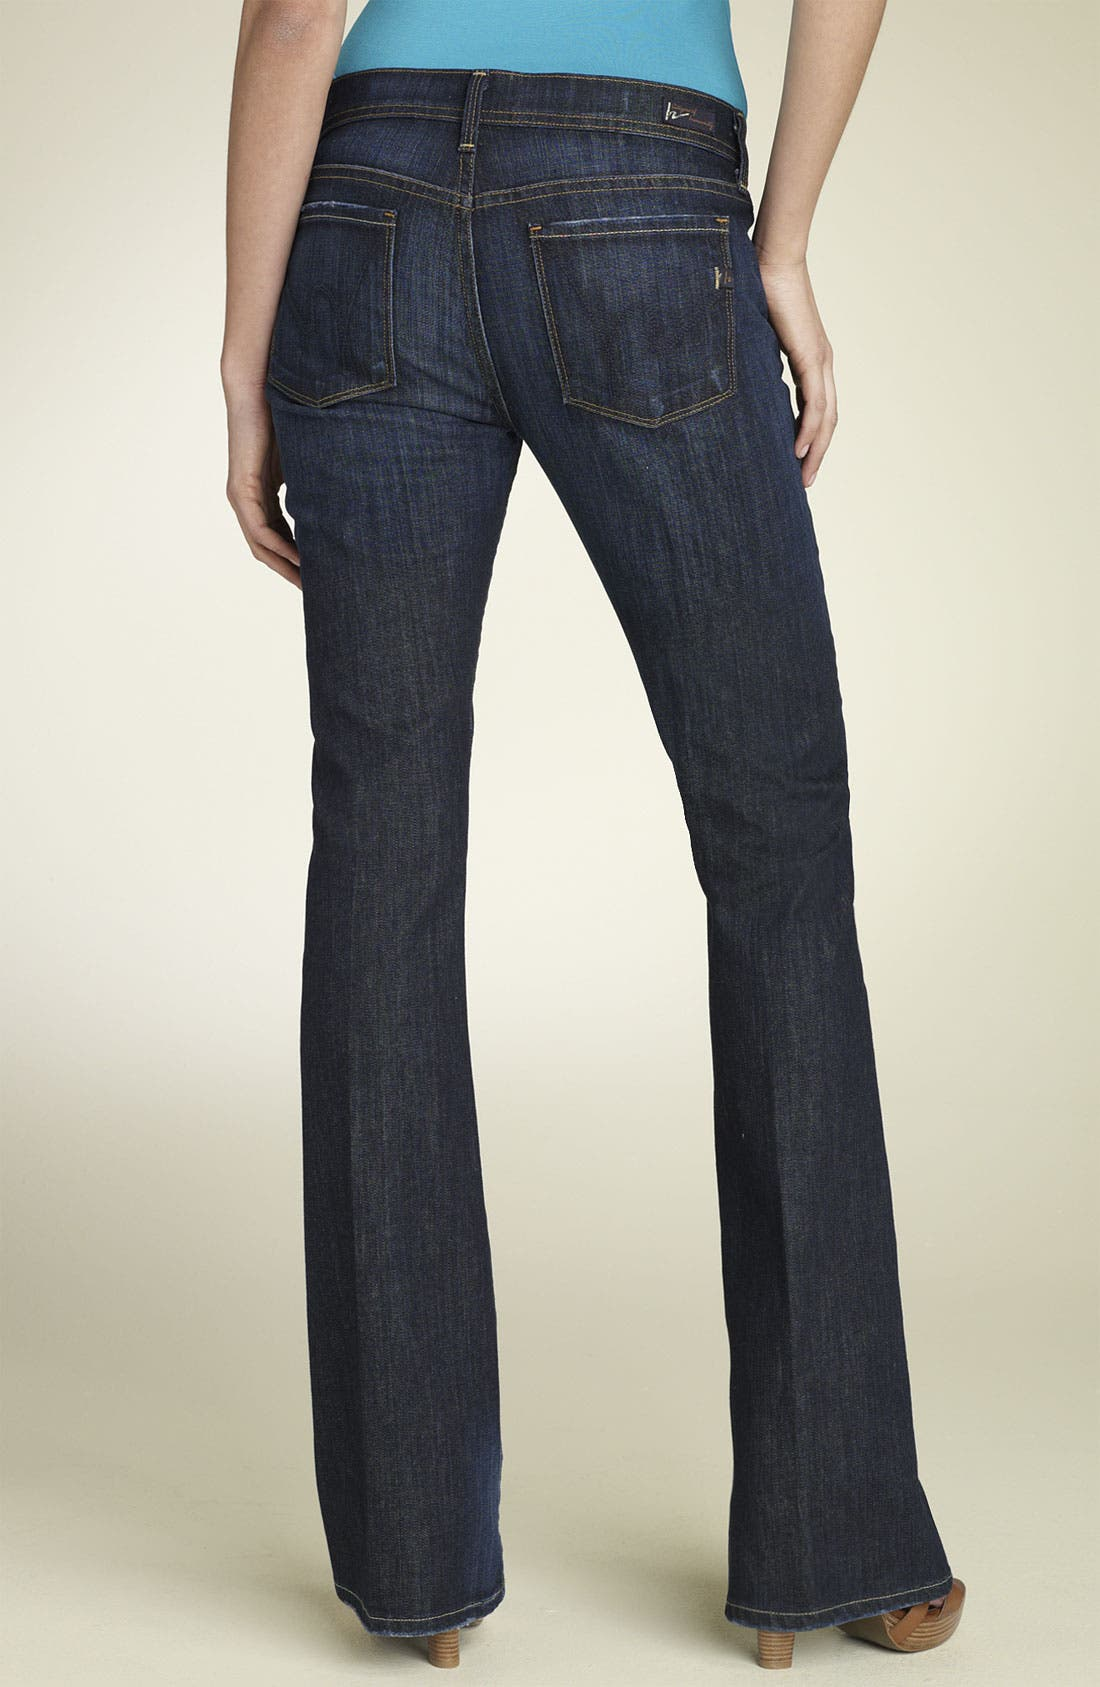 Alternate Image 1 Selected - Citizens of Humanity 'Ingrid' Stretch Jeans (New Pacific)